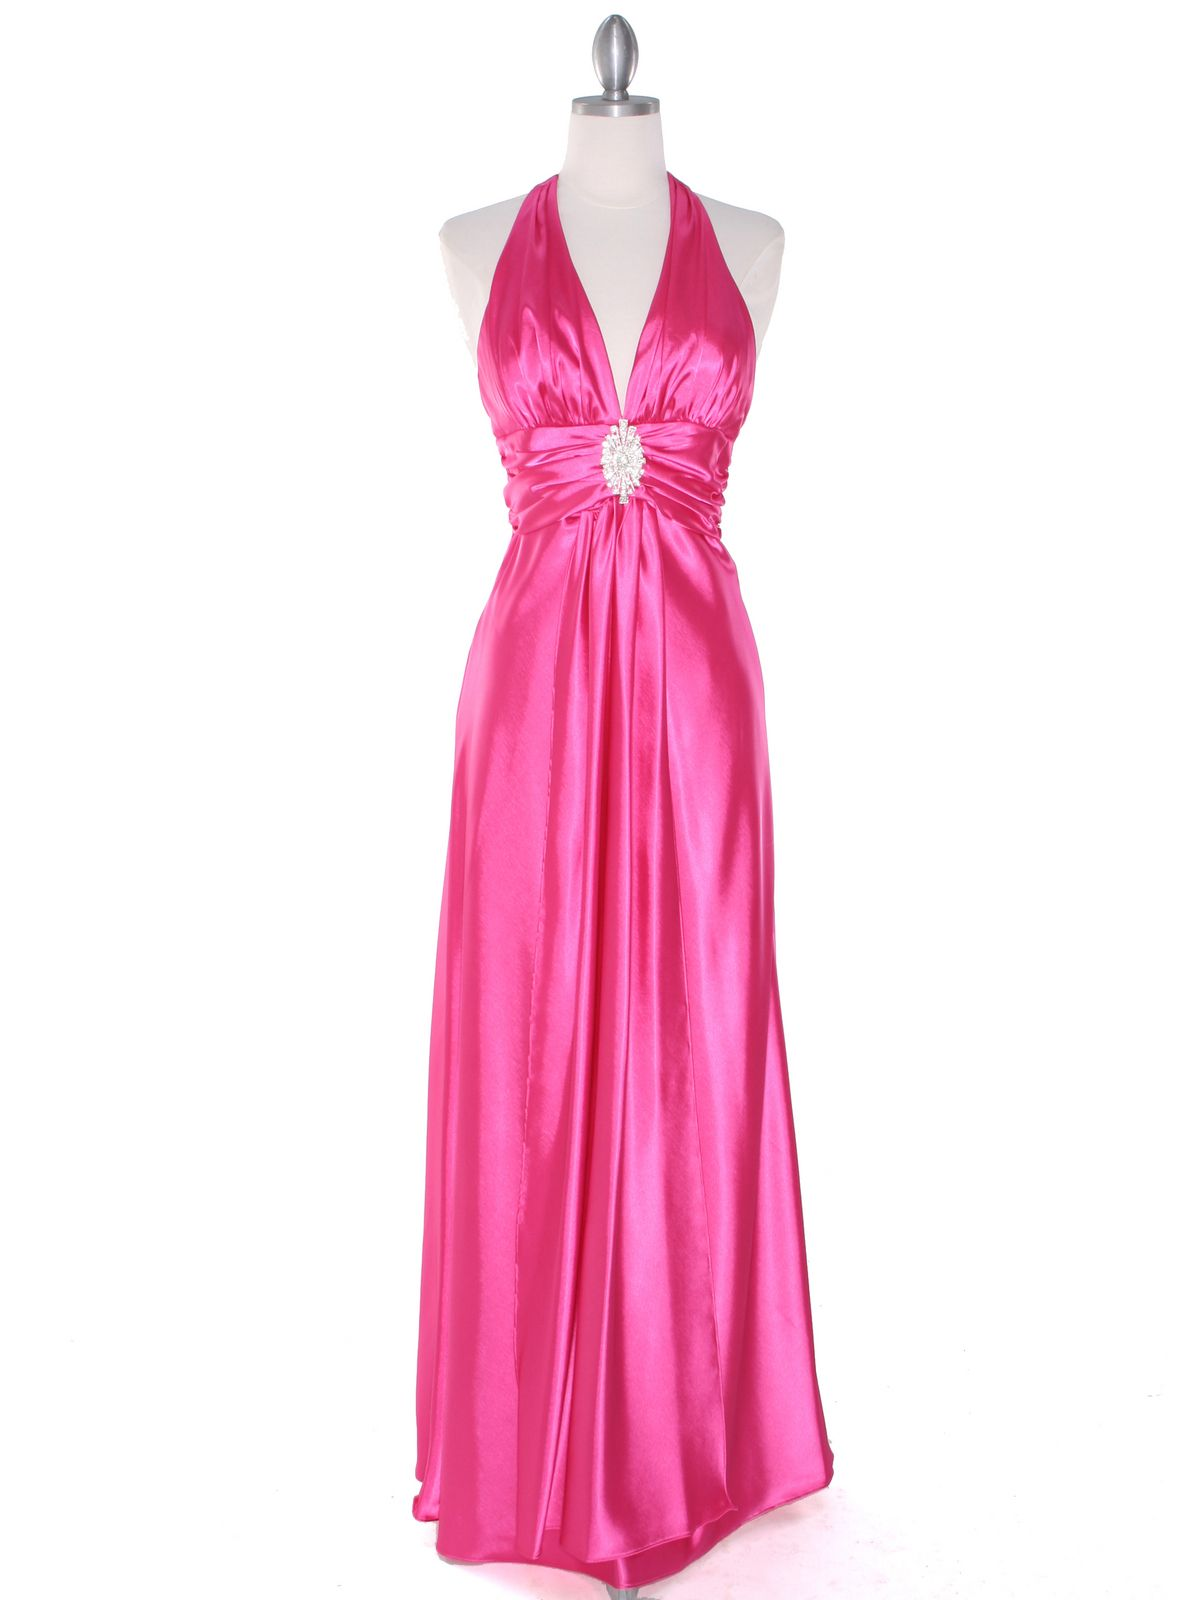 Hot Pink Satin Halter Prom Dress. Style #: 7122. Get yours today at ...